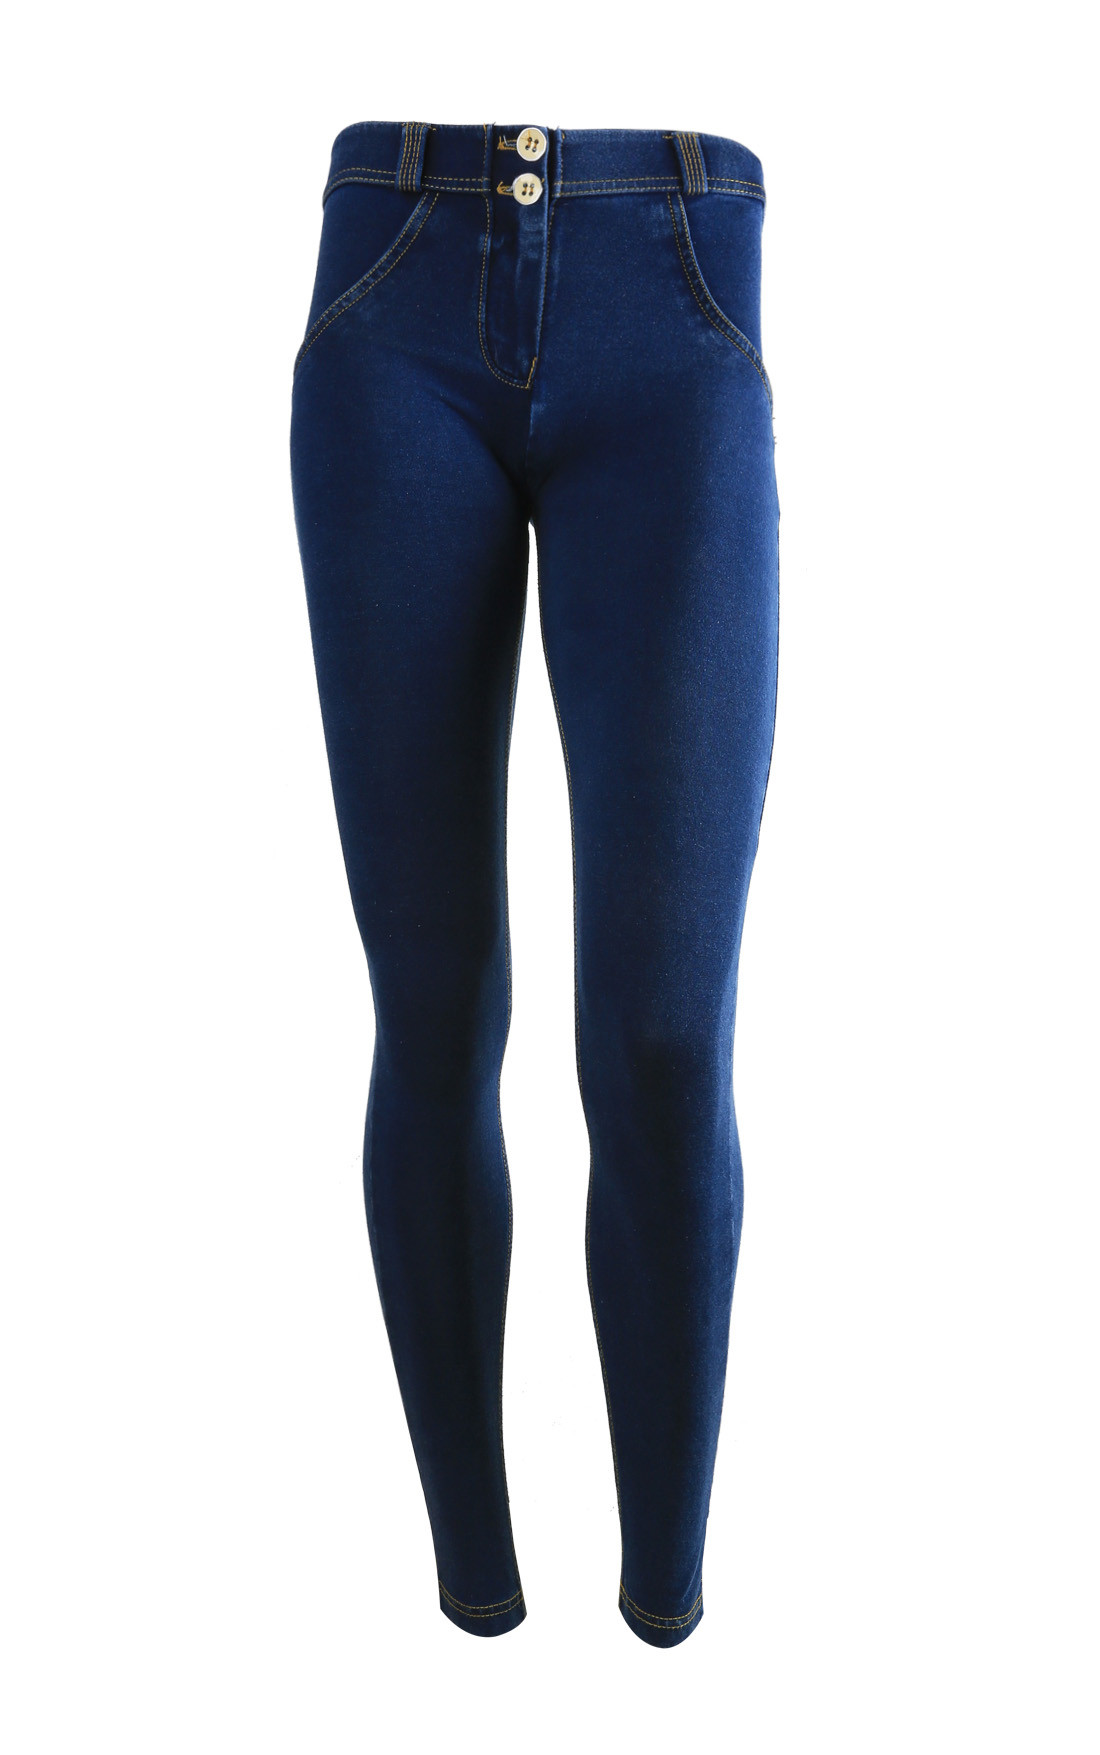 Freddy - Wr.Up® Shaping Effect Mid Waist Skinny Jeggings Dark Denim (WRUP1RJ1E_J0Y)